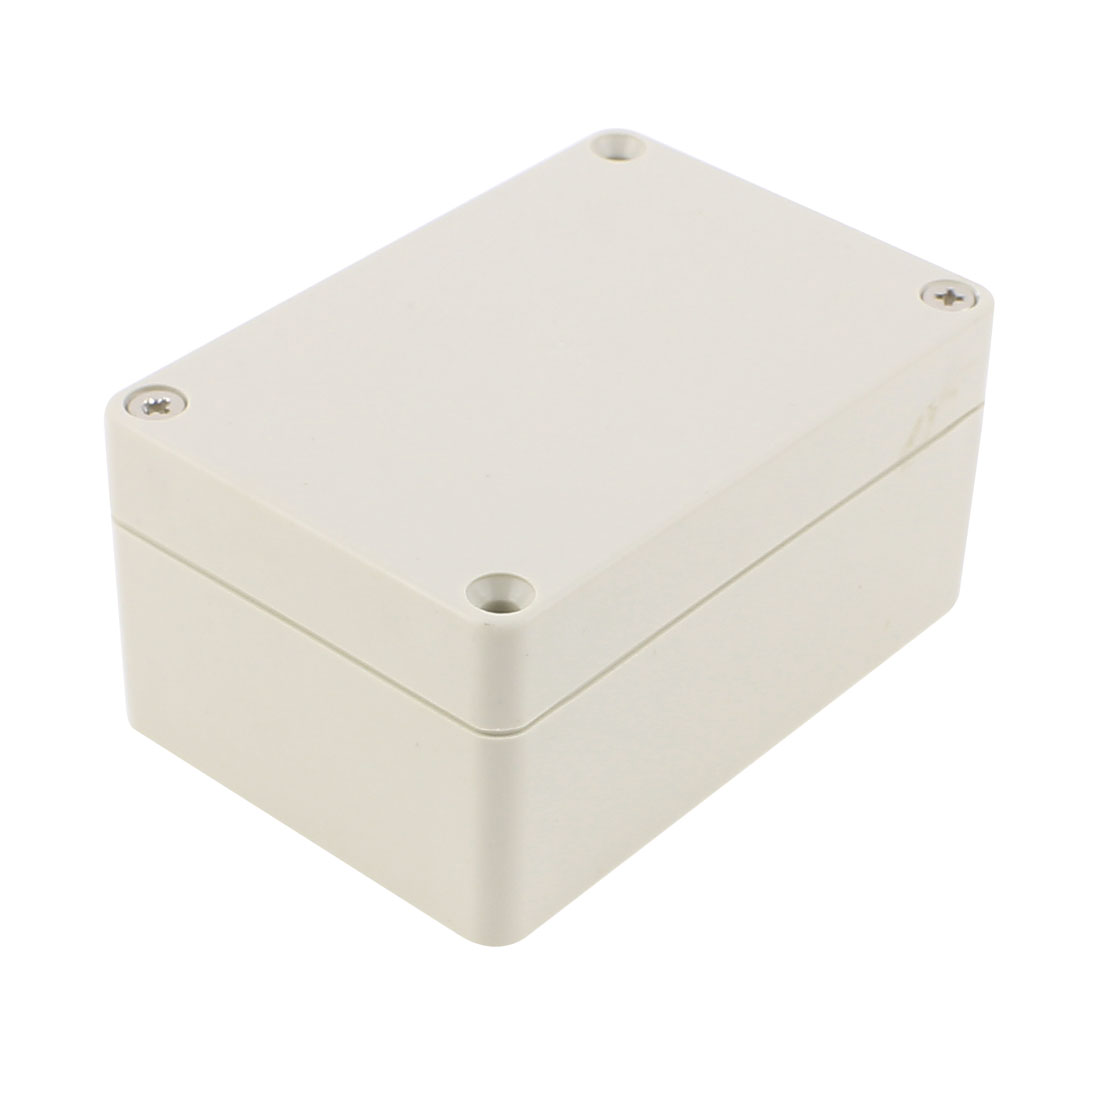 100 x 68 x 50mm Dustproof IP65 Junction Box DIY Terminal Connecting Box Enclosure